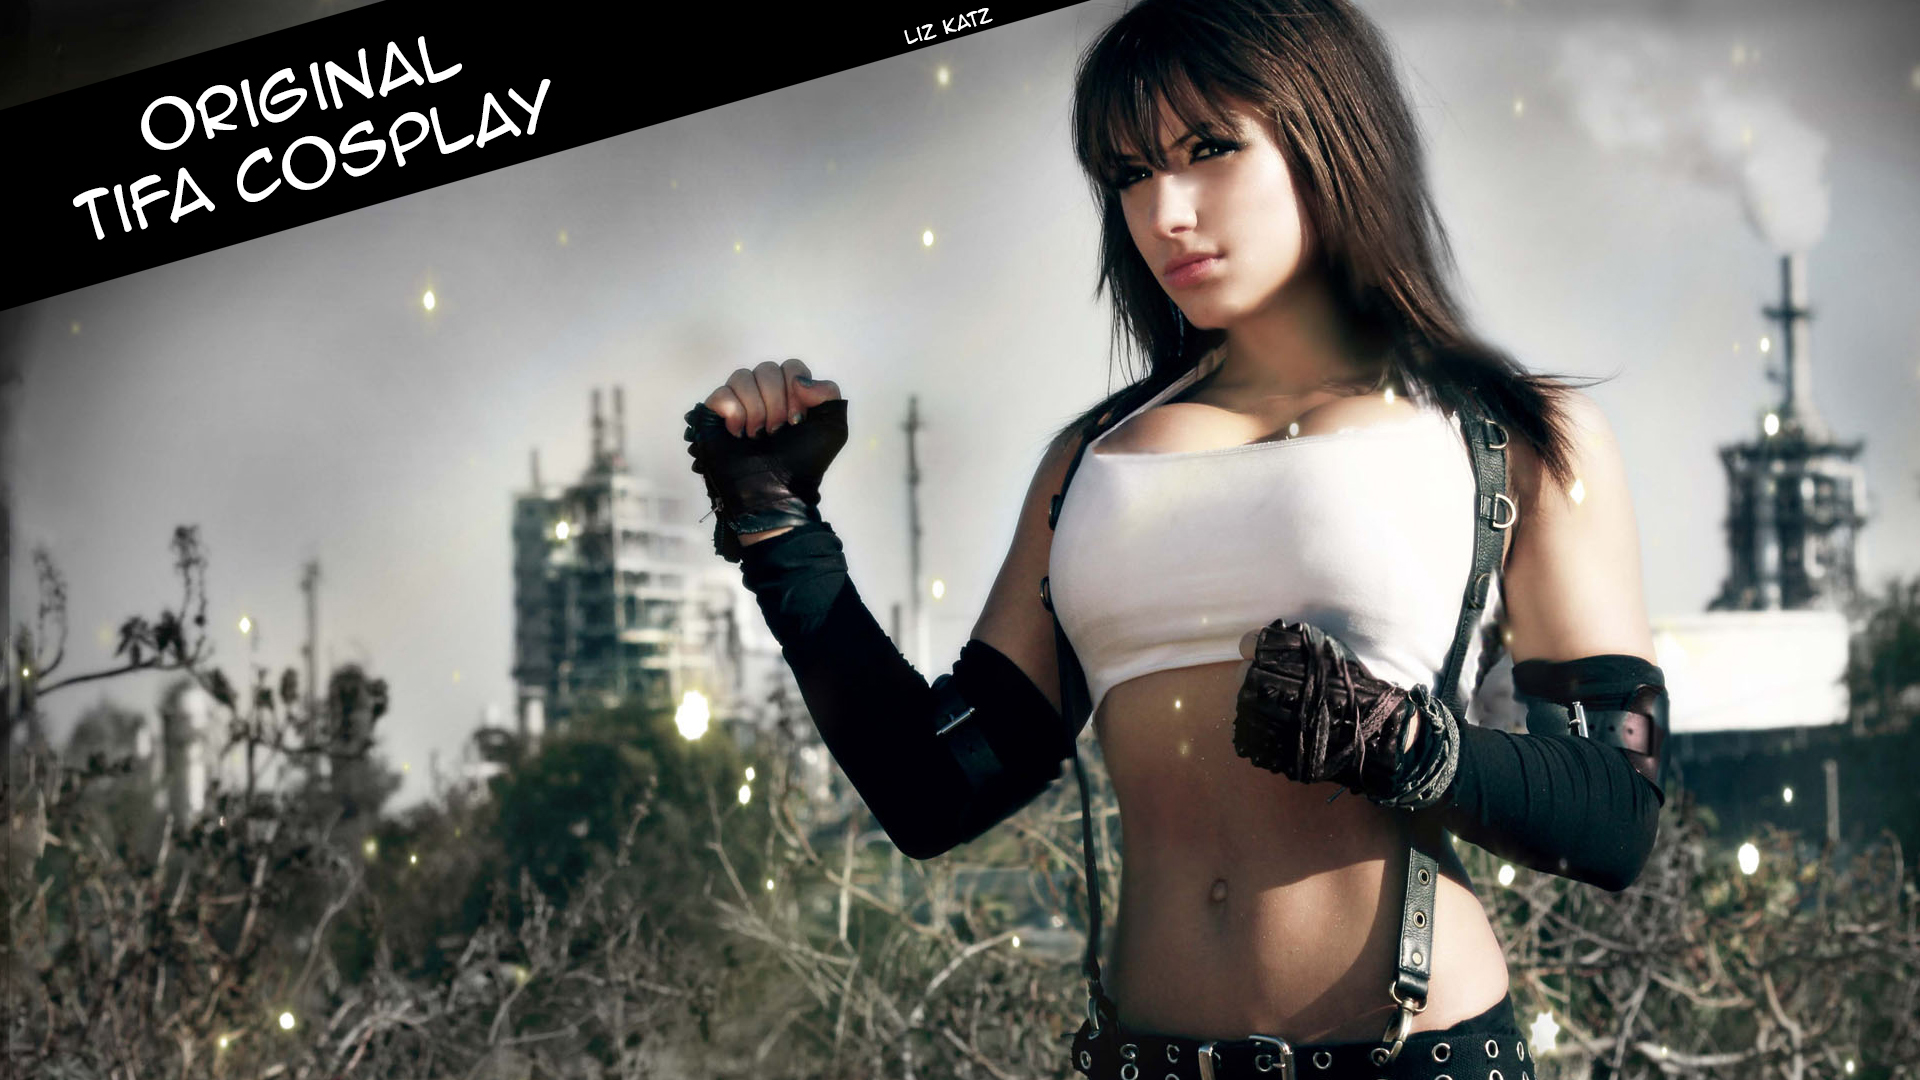 original tifa cosplay site thumb 1